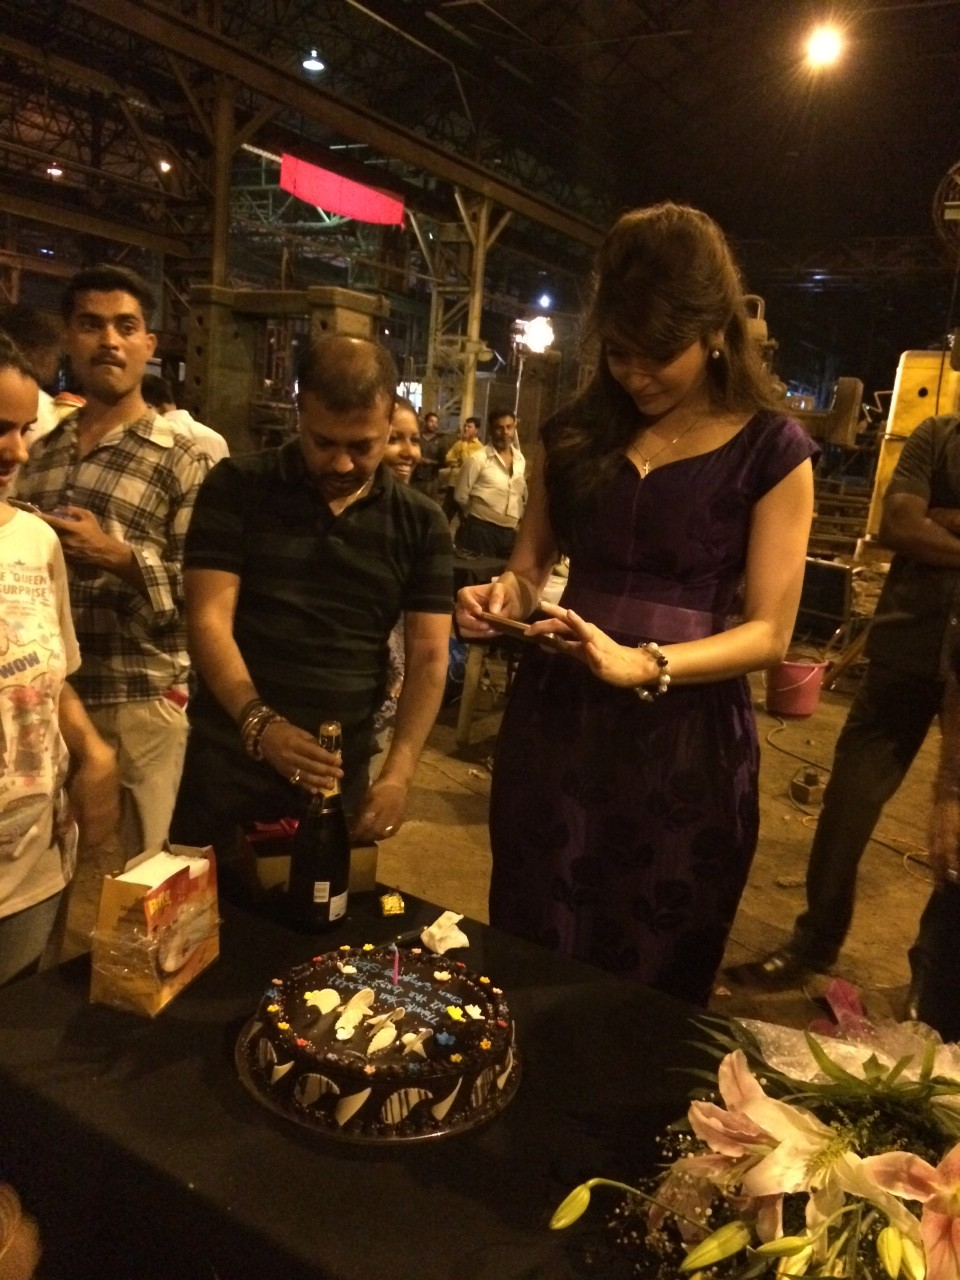 Anushka taking a picture of the cake before cutting it